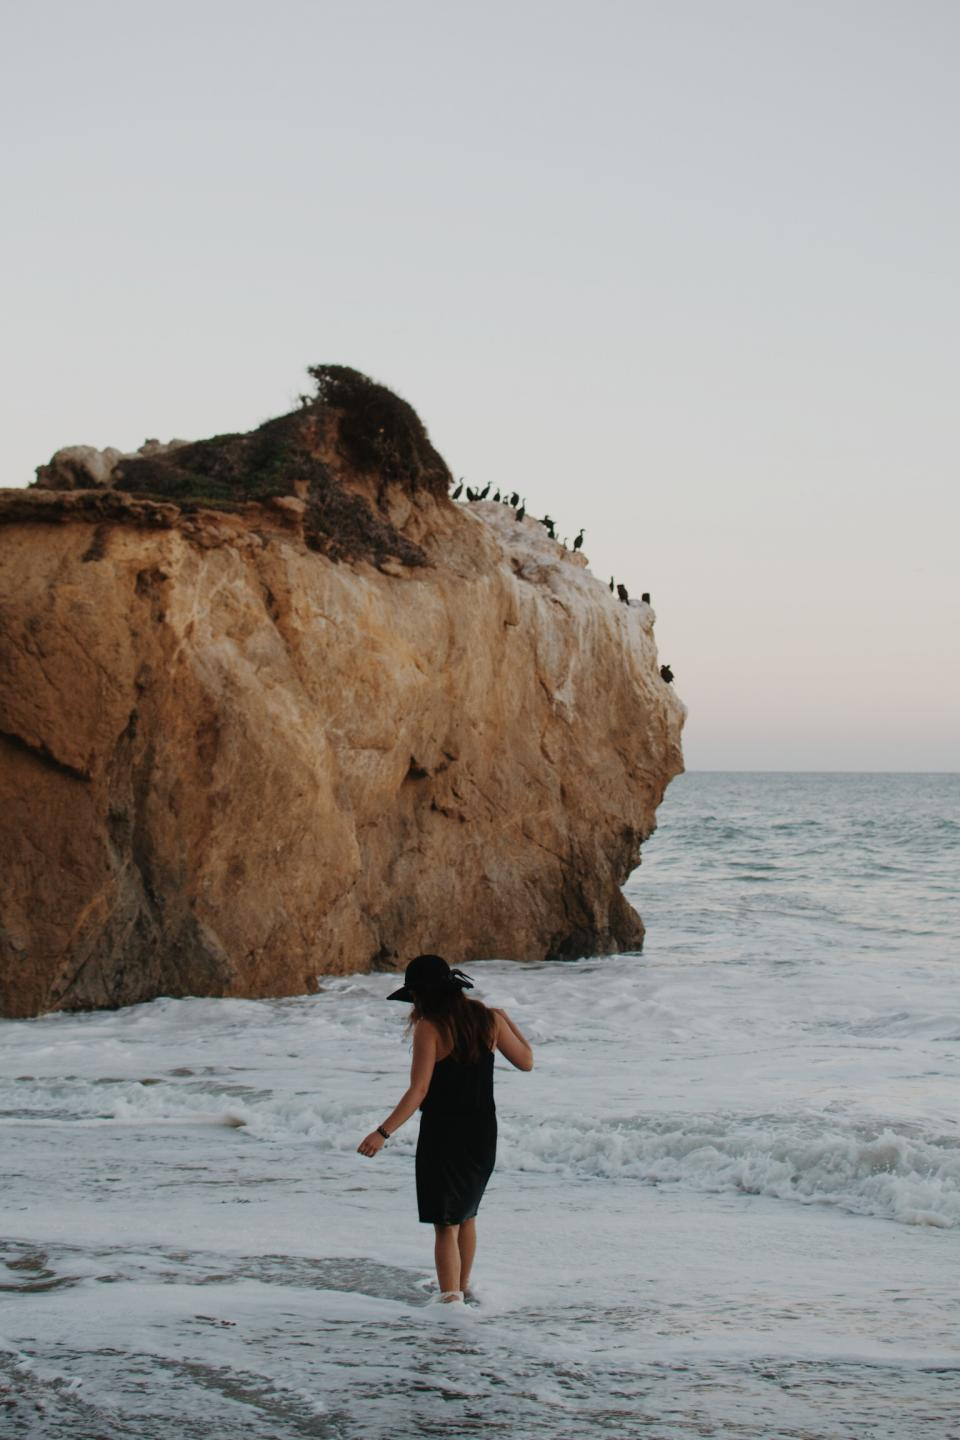 beach, water, waves, girl, woman, hat, dress, ocean, sea, cliffs, rocks, coast, birds, people